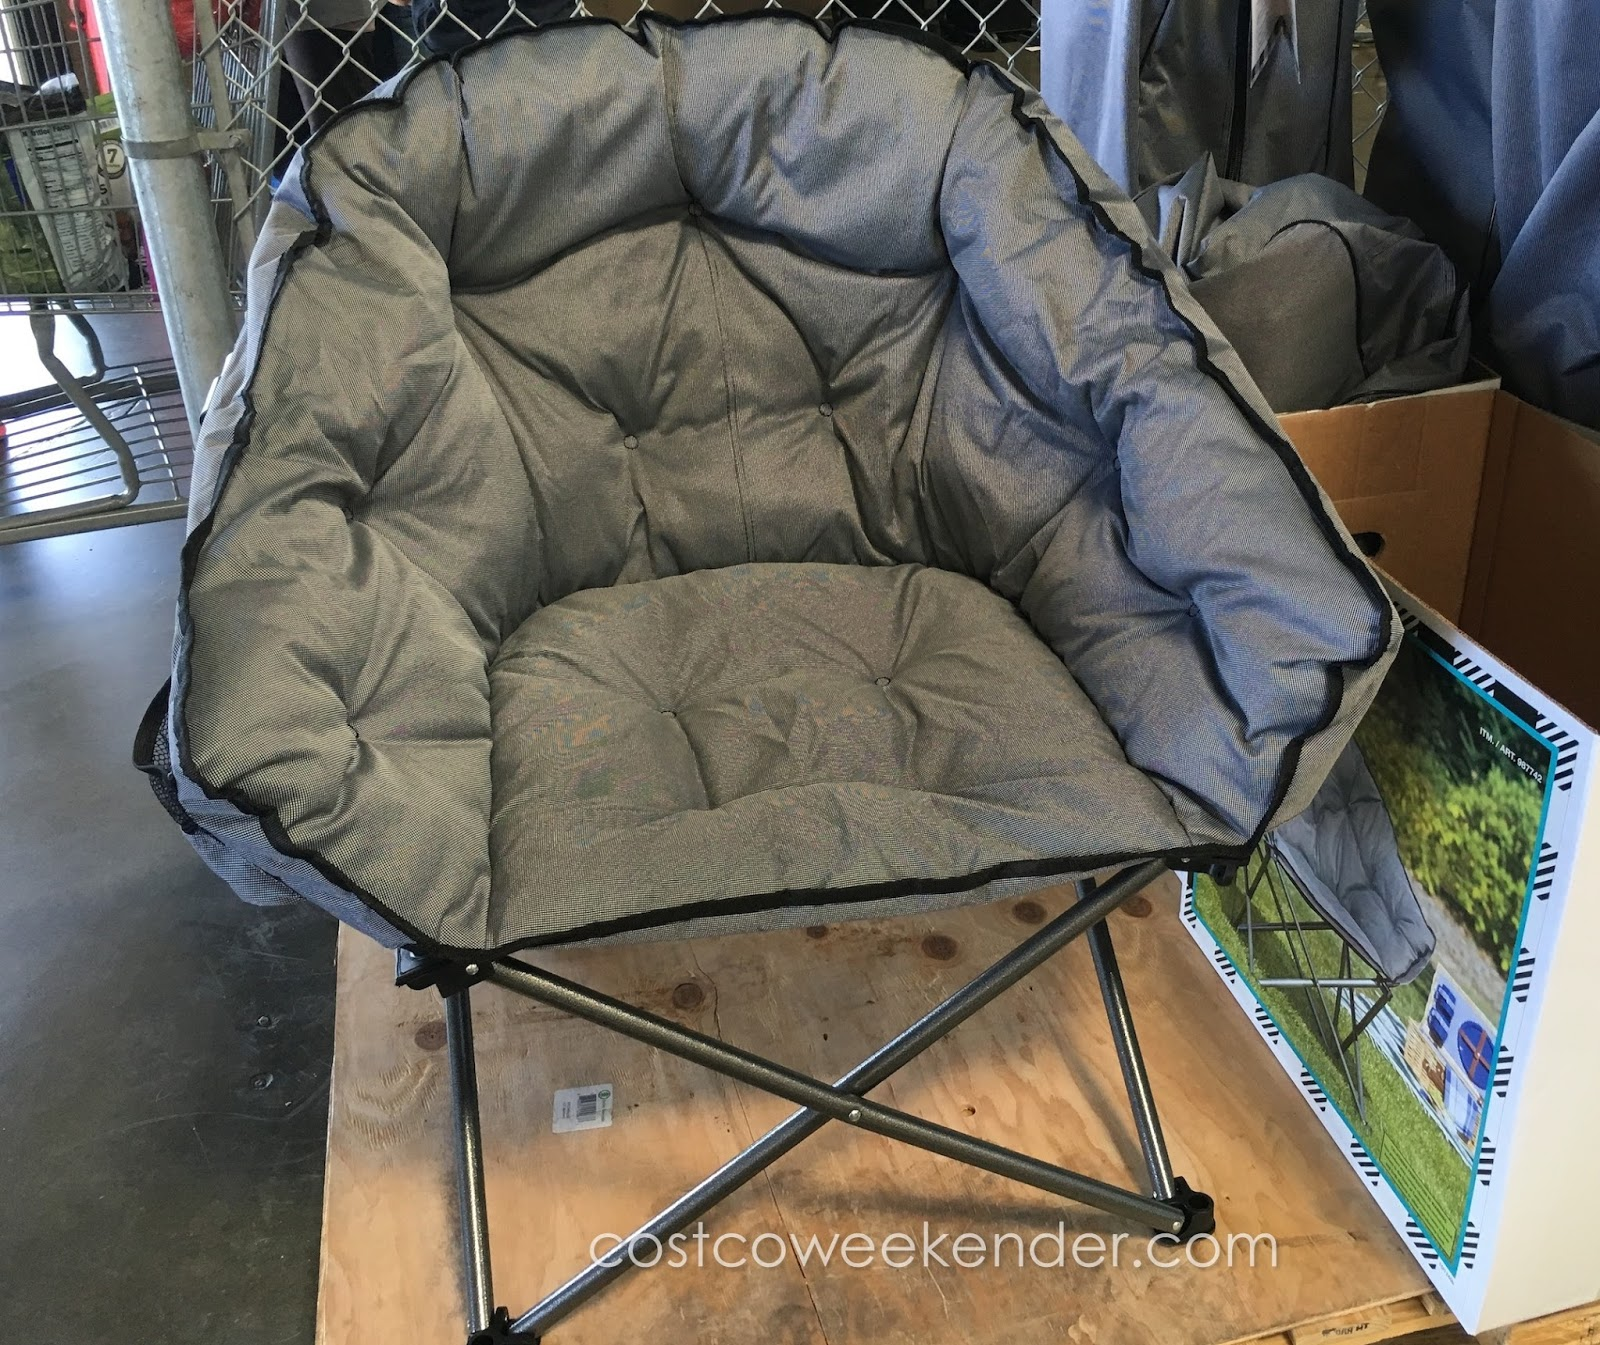 Chairs At Costco Tofasco Extra Padded Club Chair Costco Weekender